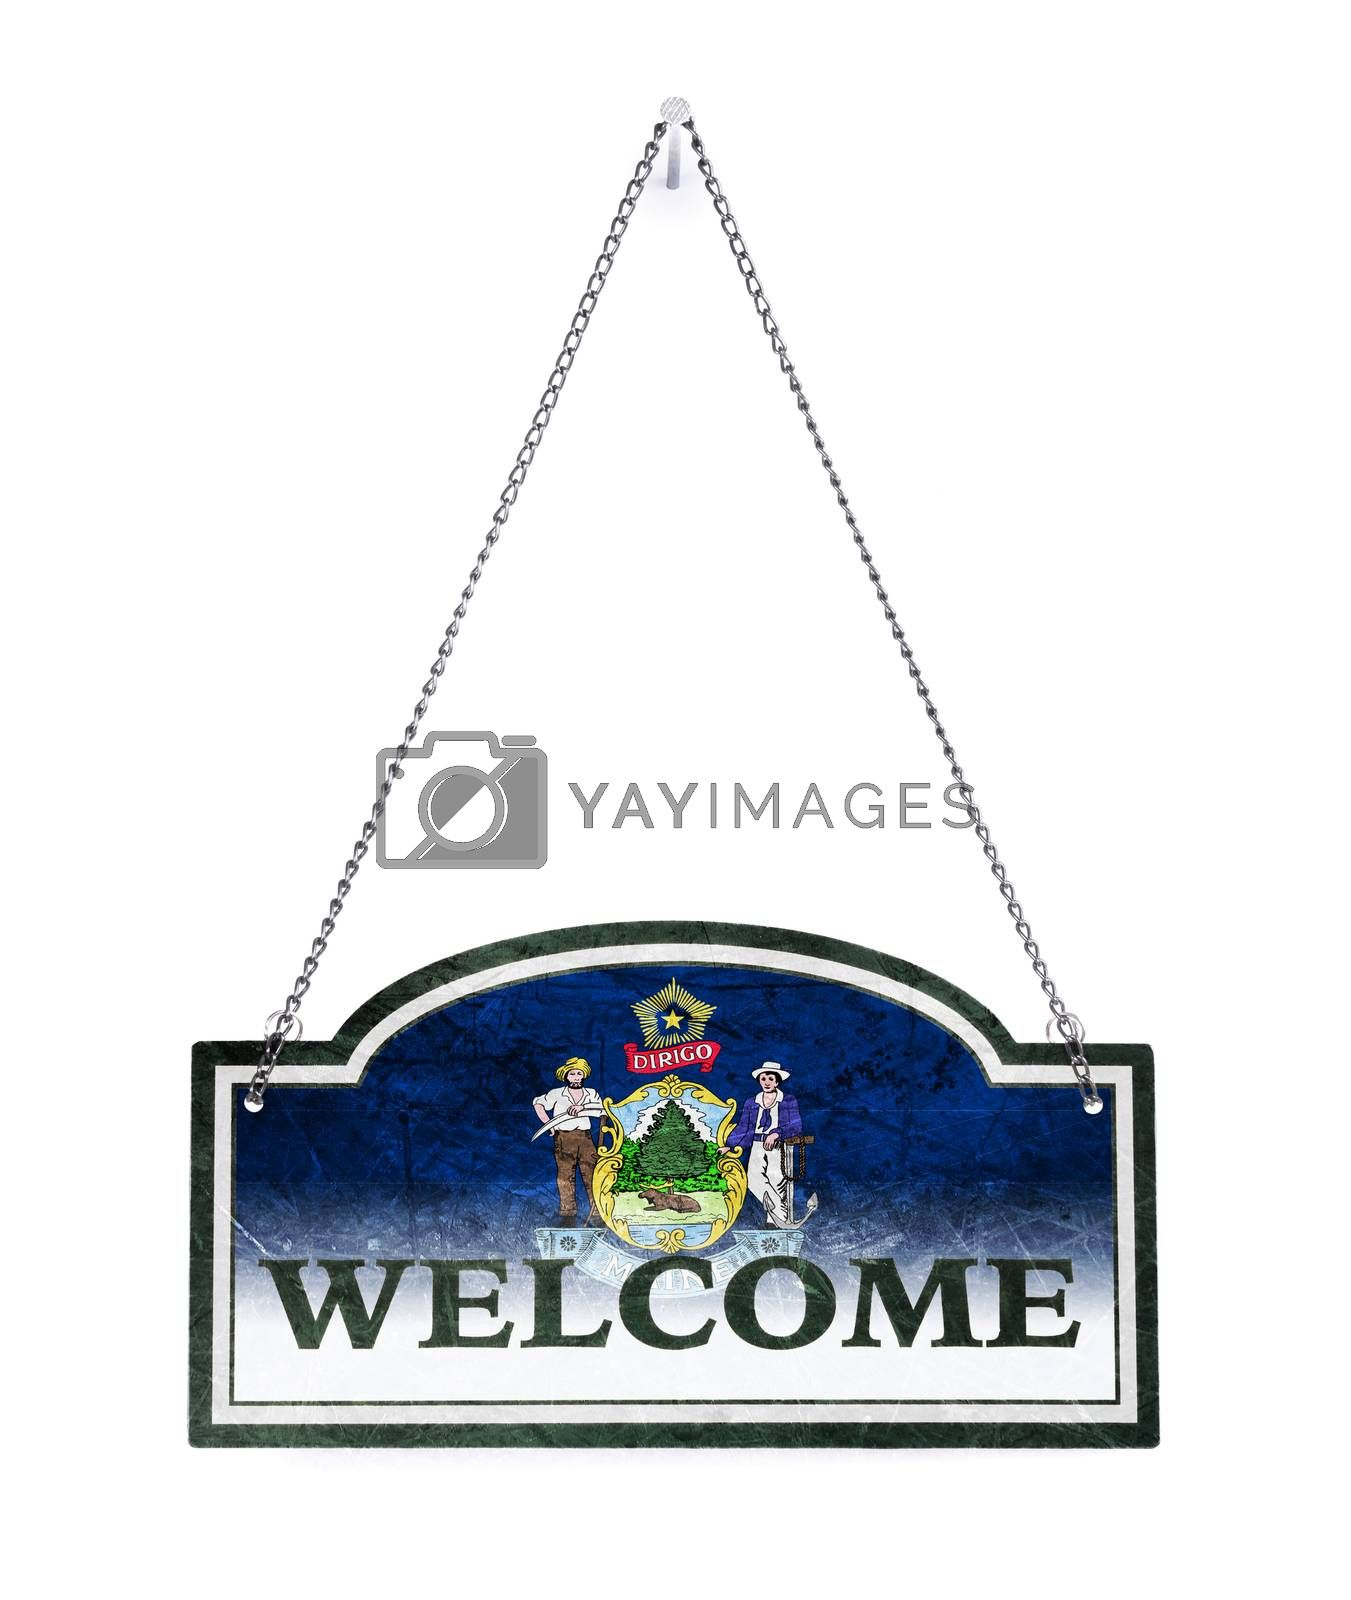 Maine welcomes you! Old metal sign isolated by michaklootwijk